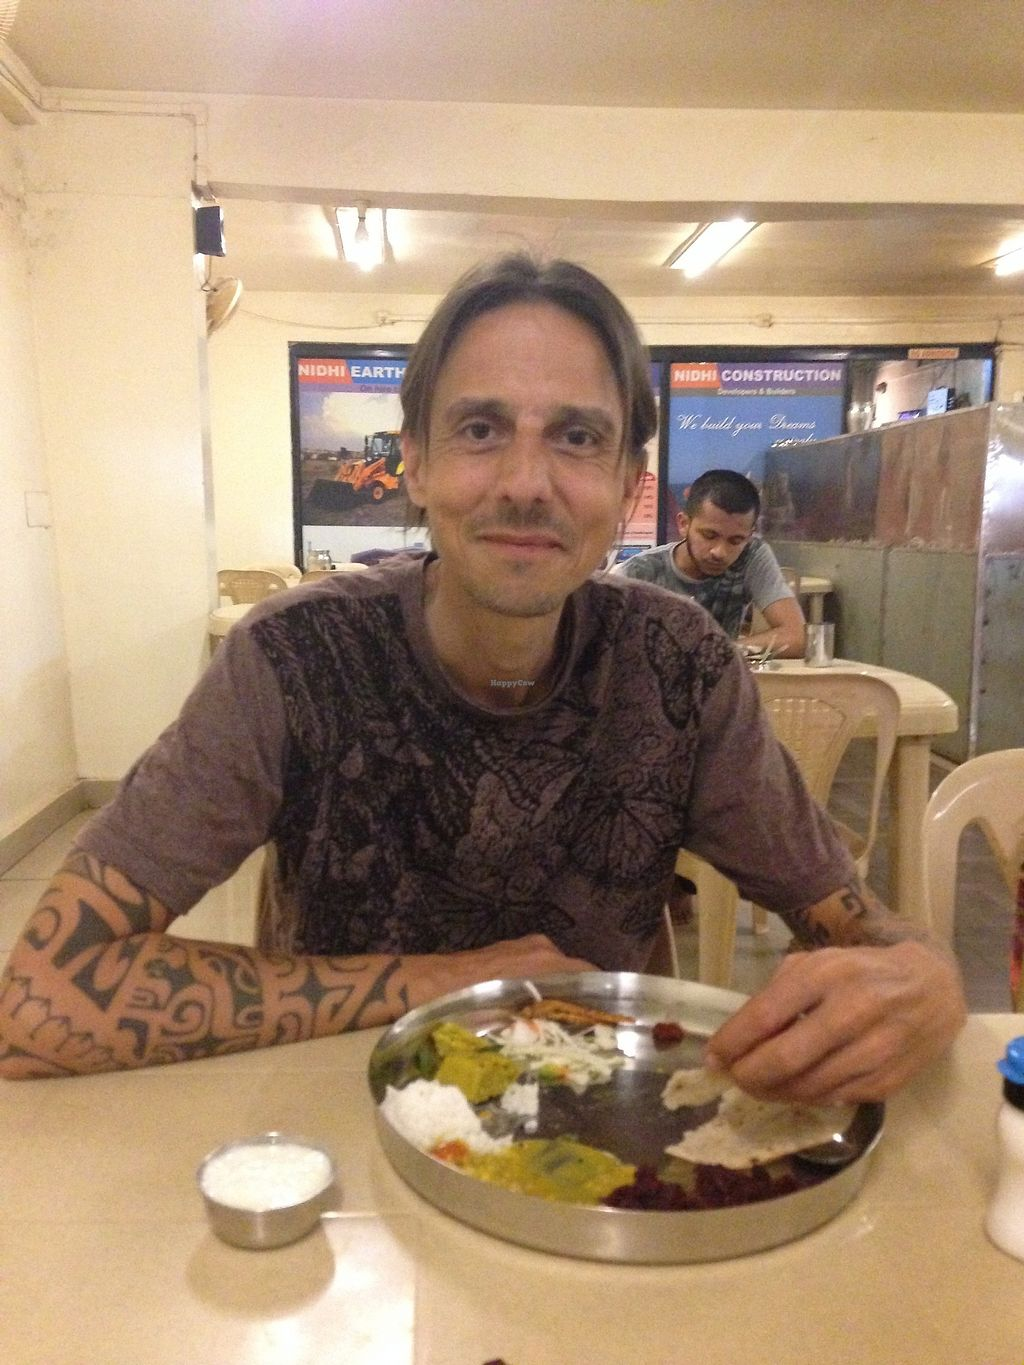 """Photo of Lalit Dining  by <a href=""""/members/profile/LobkeBrasseur"""">LobkeBrasseur</a> <br/>Delicious thali  <br/> March 20, 2018  - <a href='/contact/abuse/image/115006/373190'>Report</a>"""